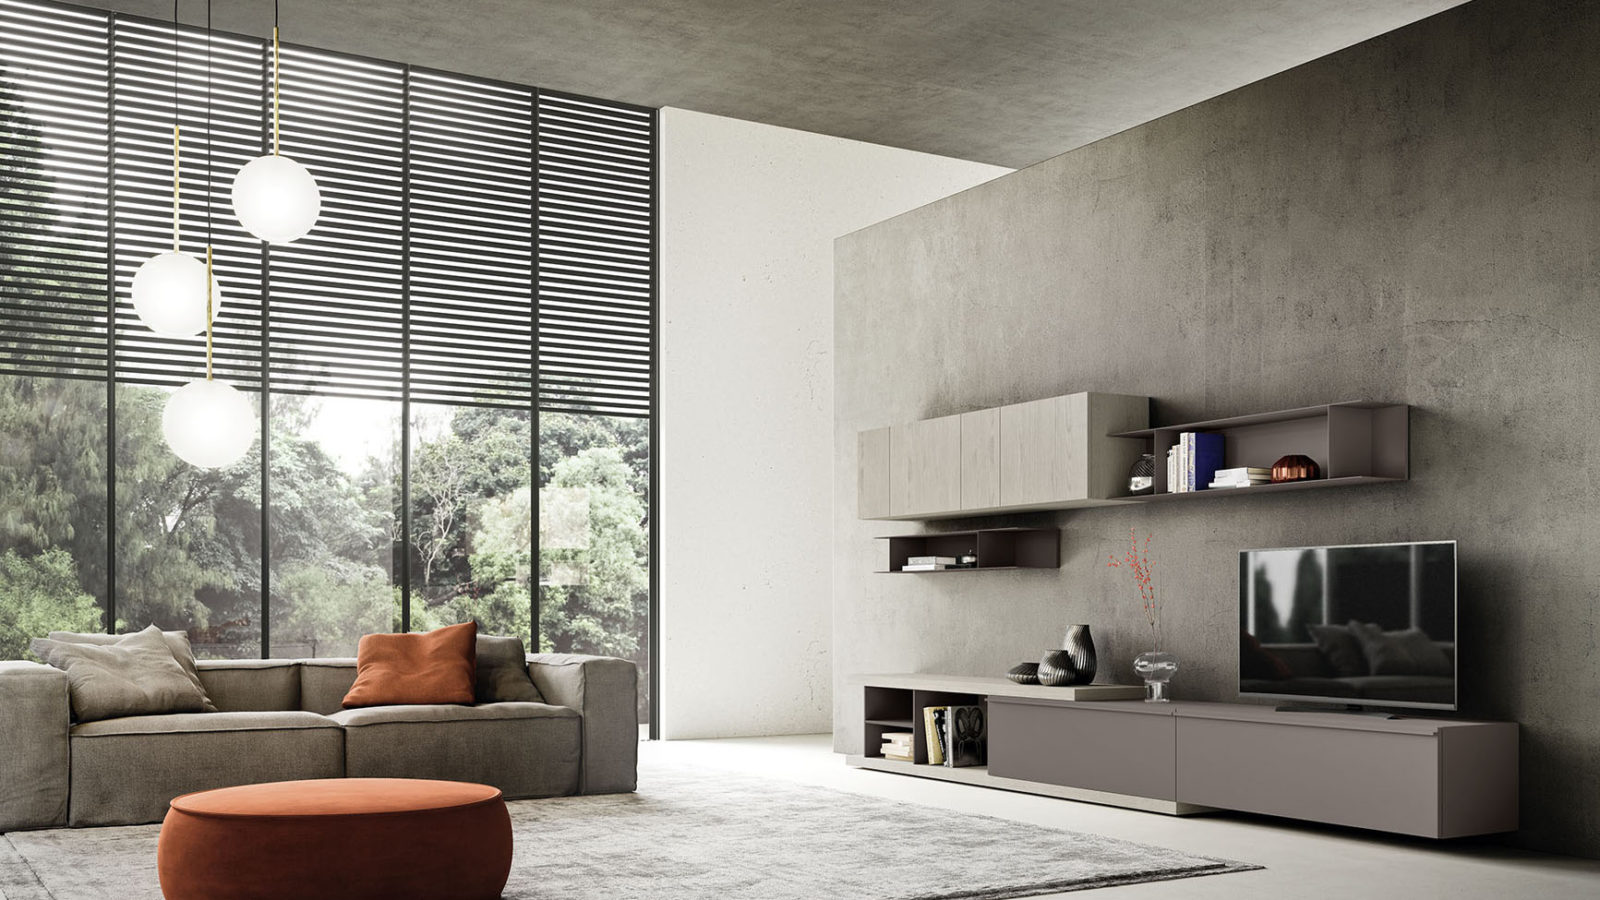 Design Furniture For The Living Room And Bedroom Spaces